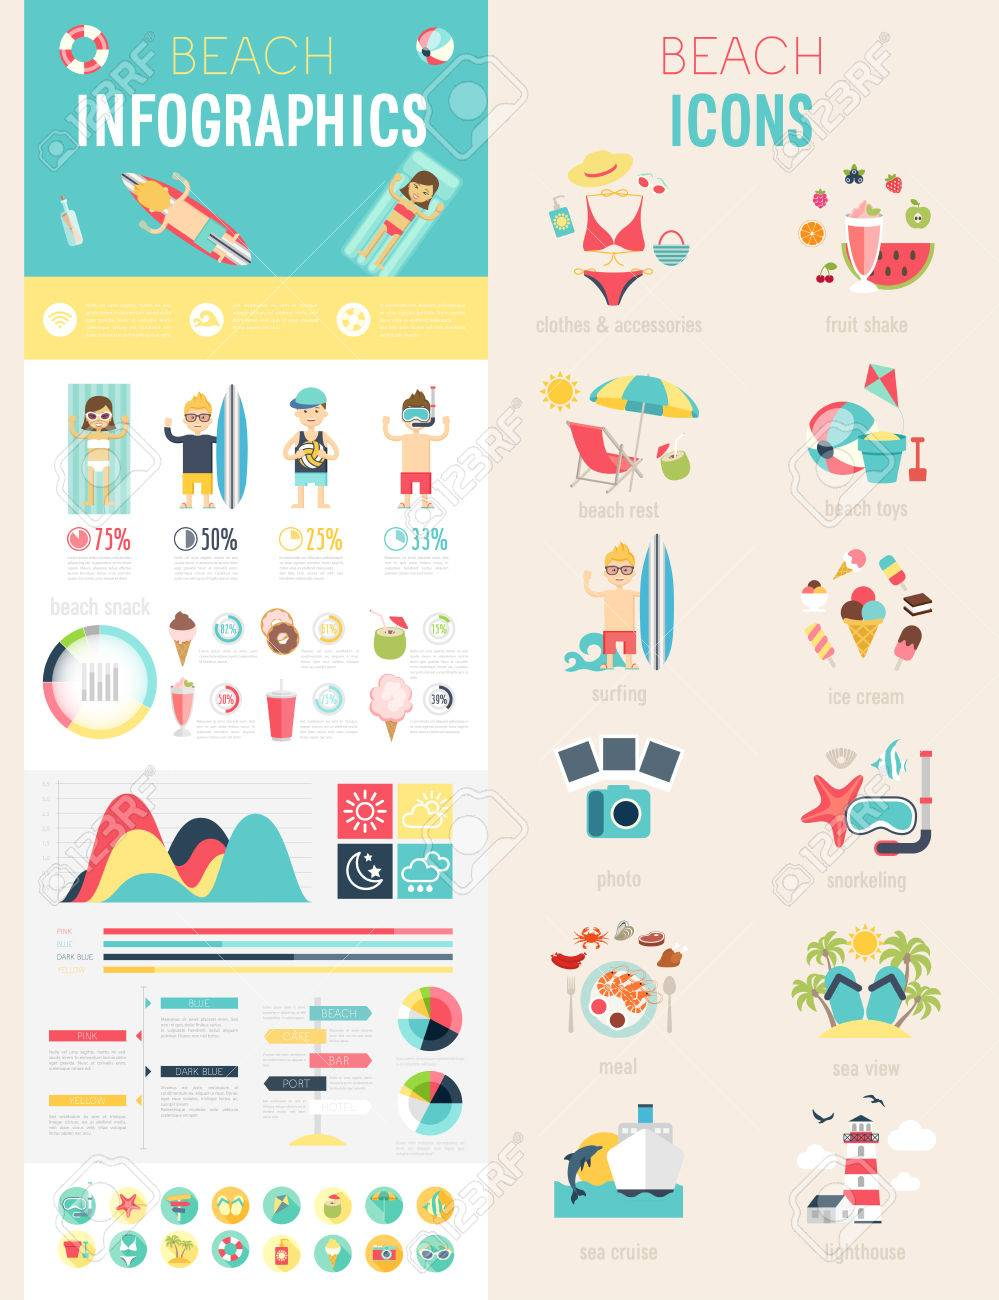 Beach Infographic set with charts and icons. Vector illustration. - 39095540